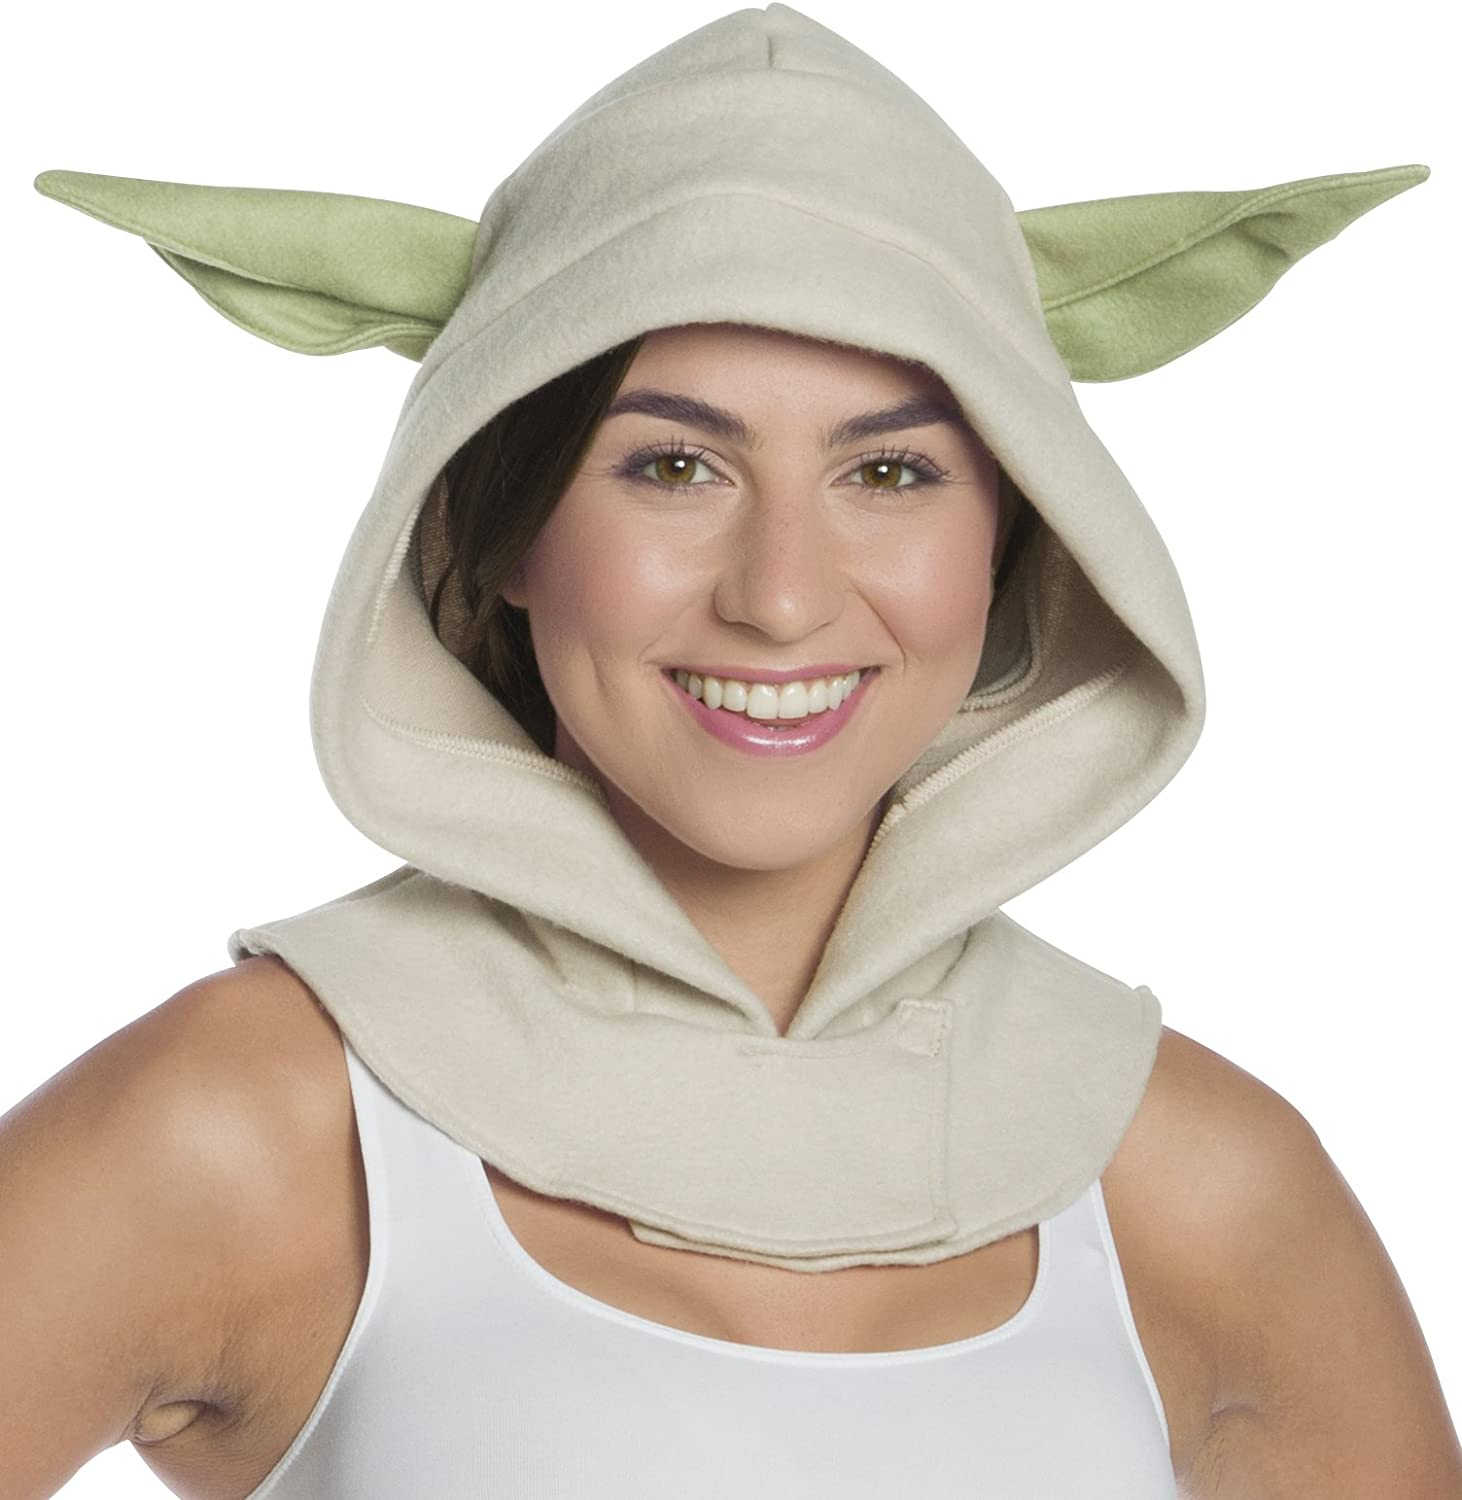 Rubies Adult Star Wars Yoda Hood